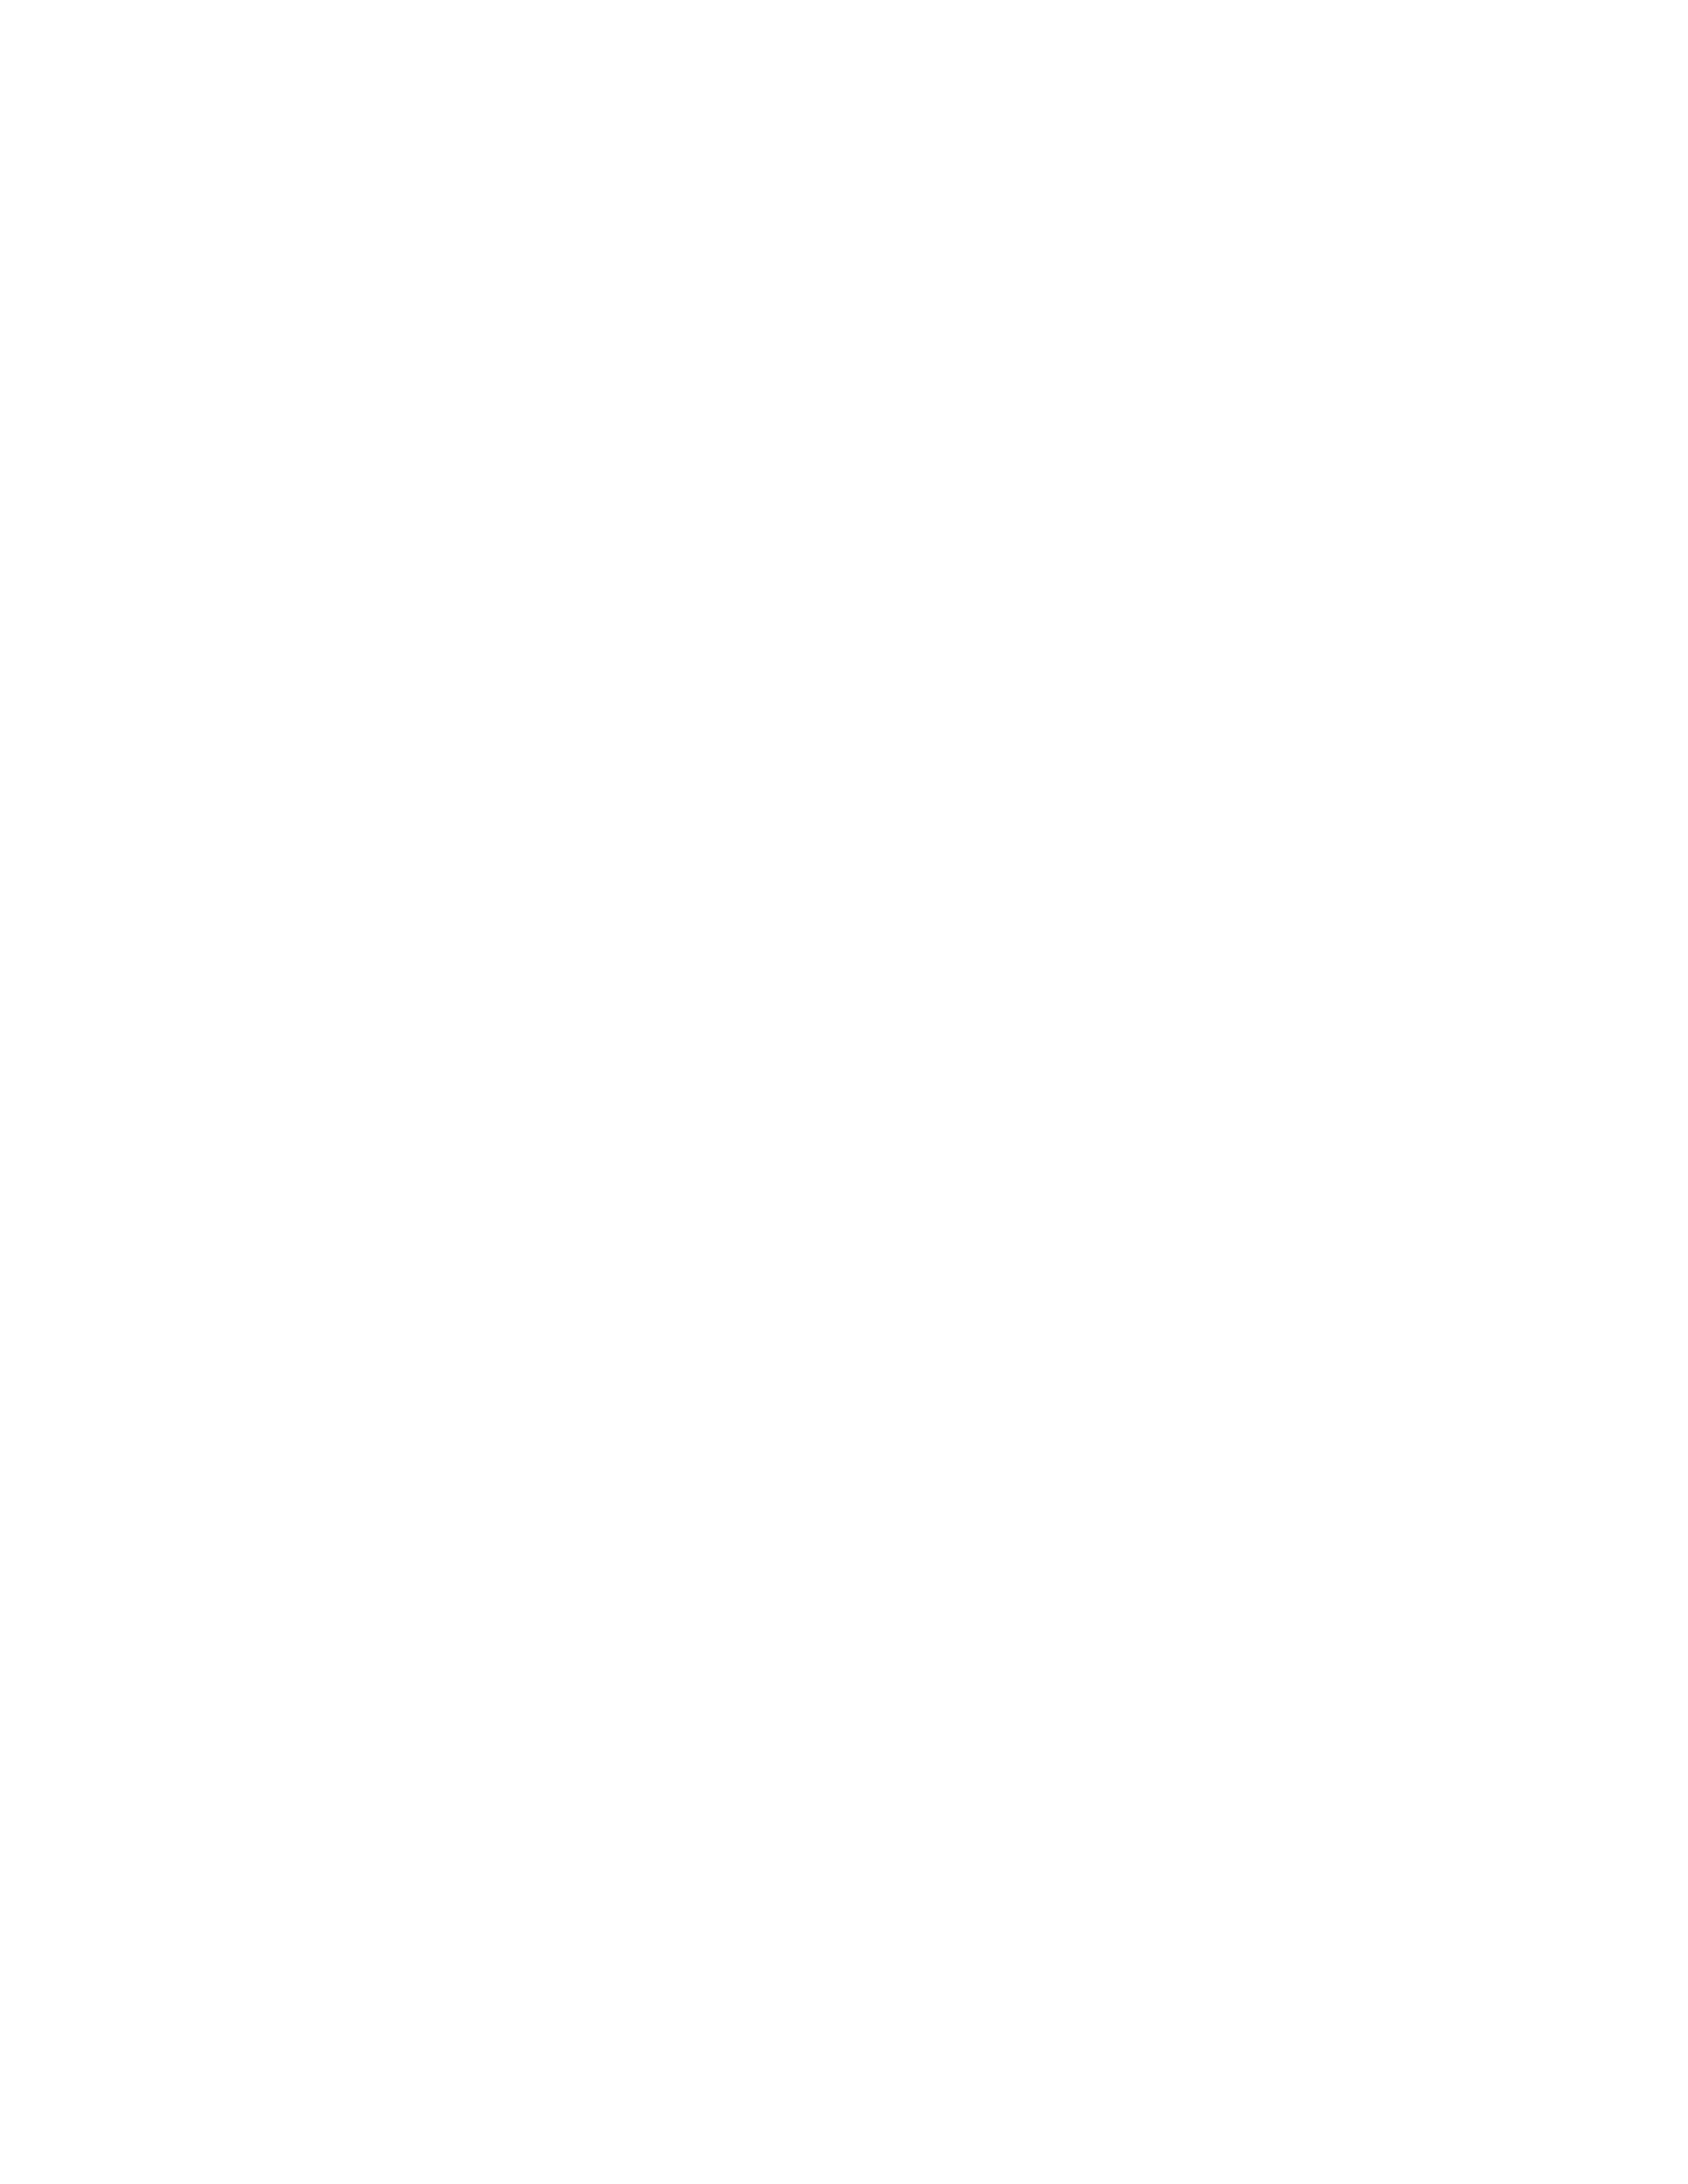 Ferry Icon Png - Logos - New York City Ferry Service